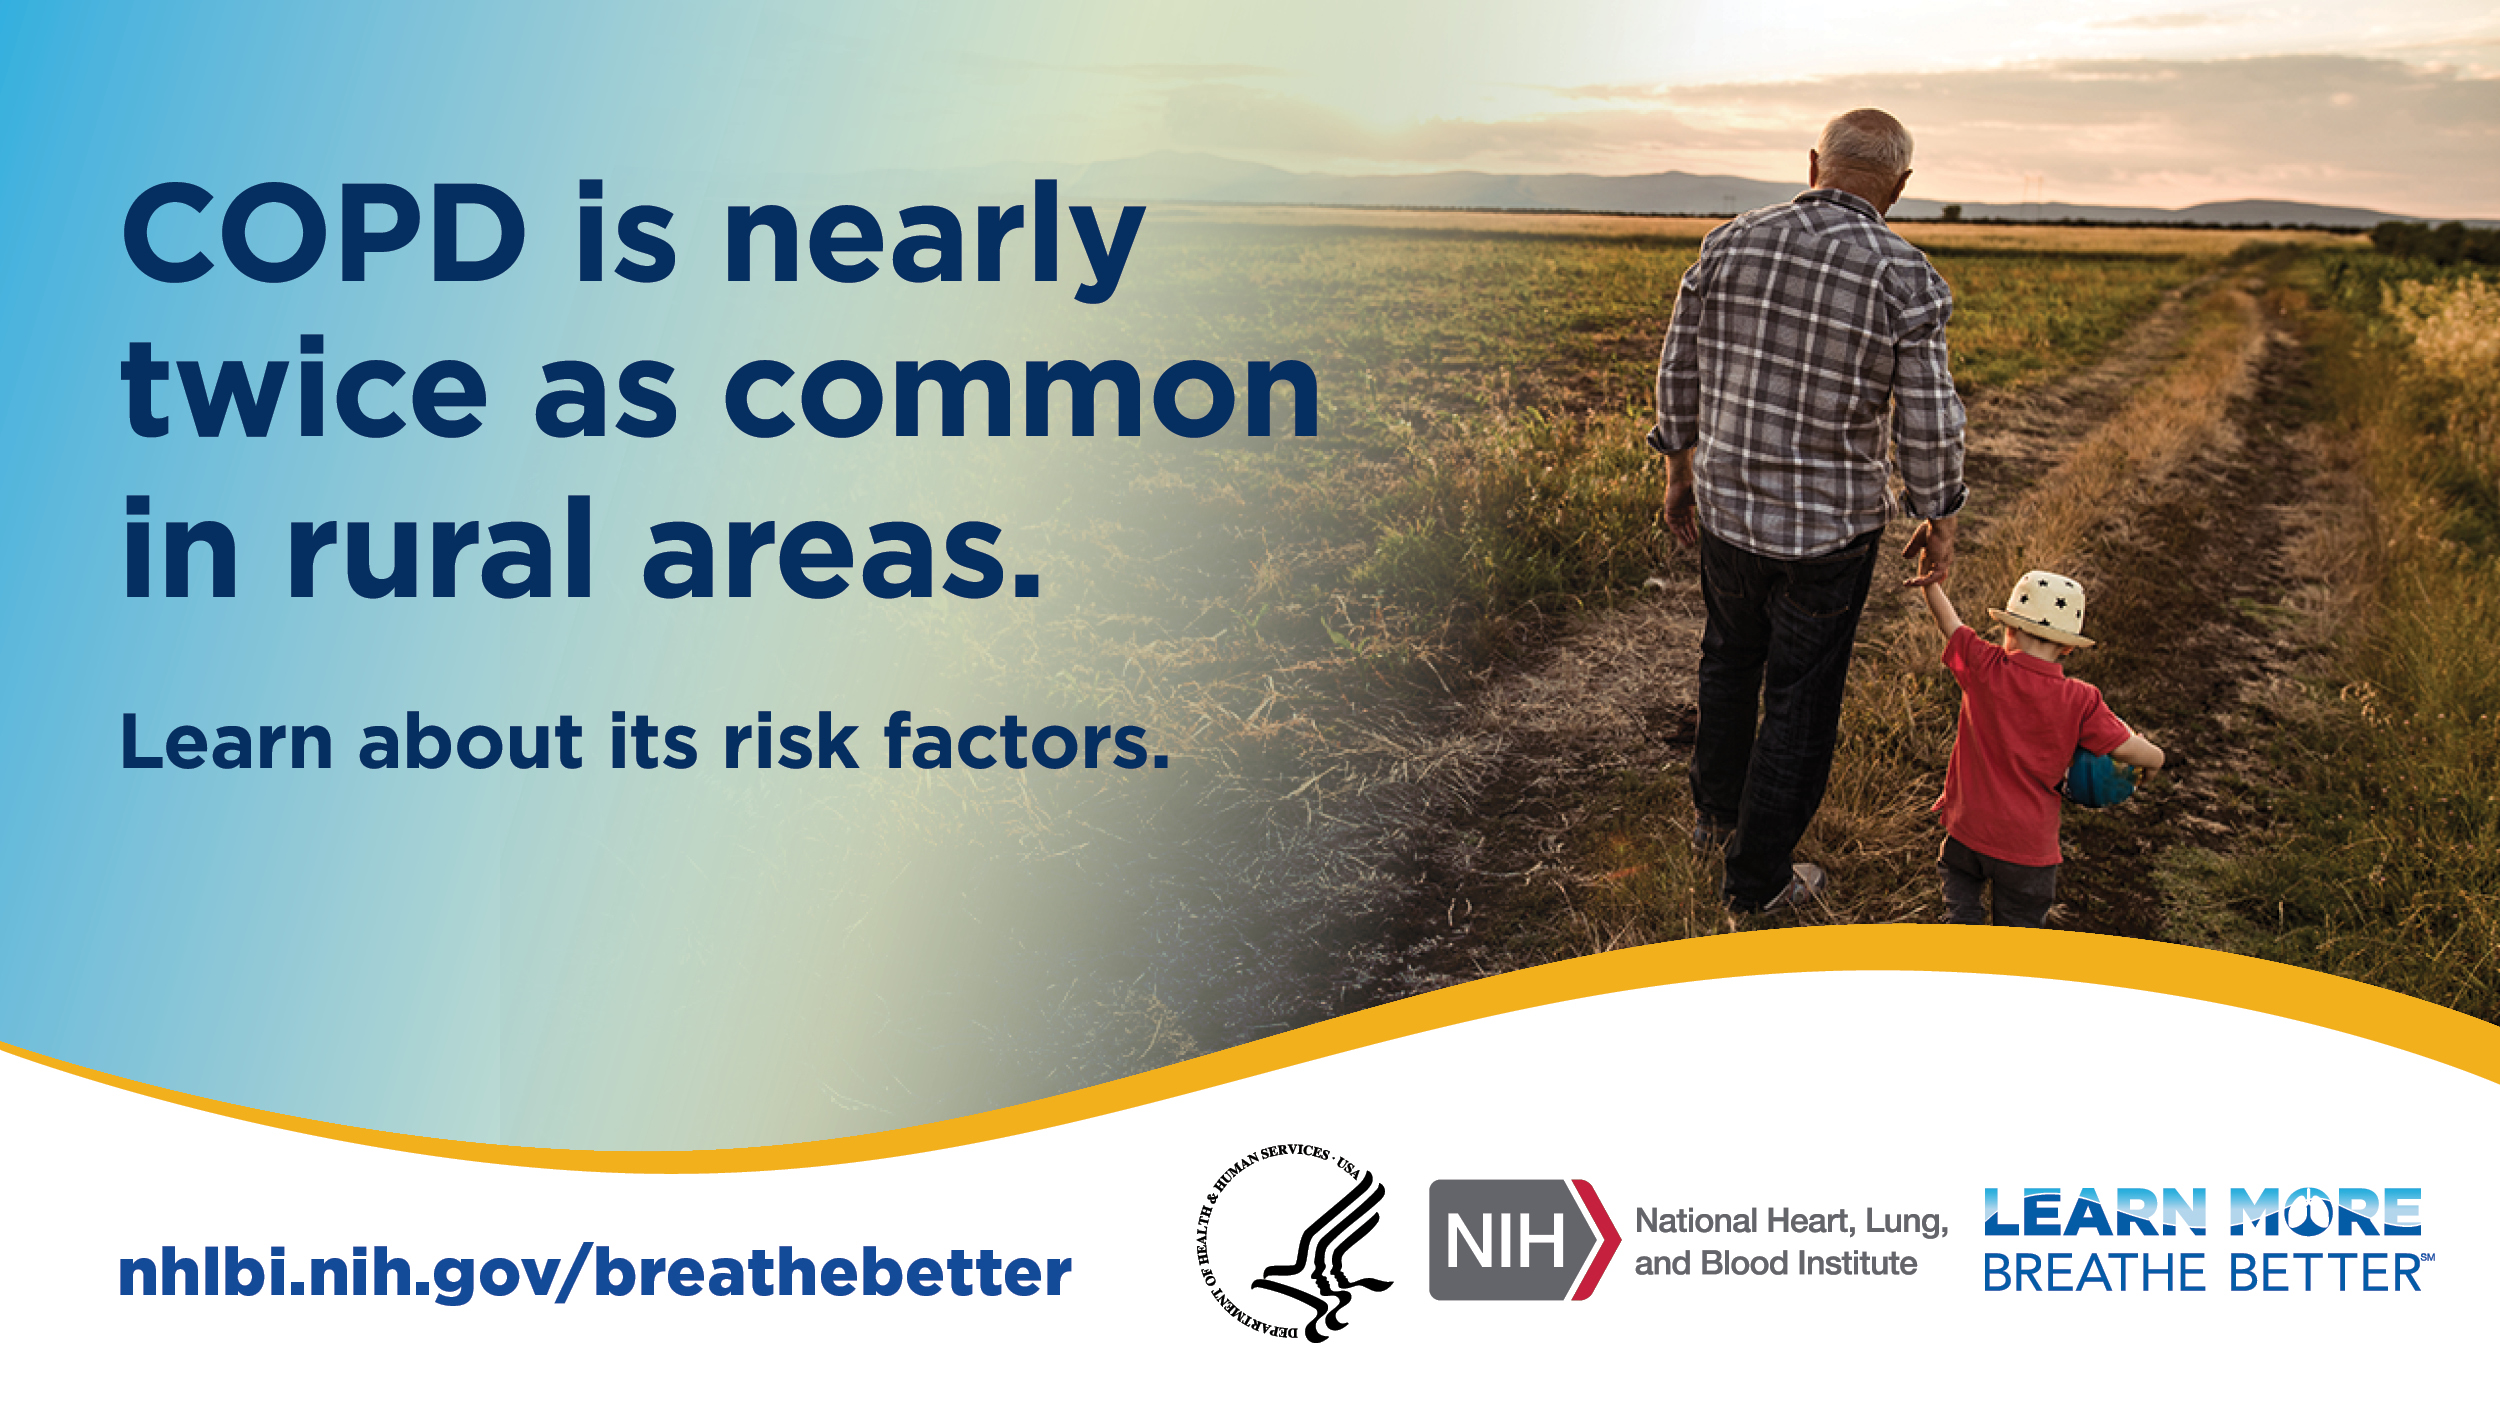 COPD rural areas